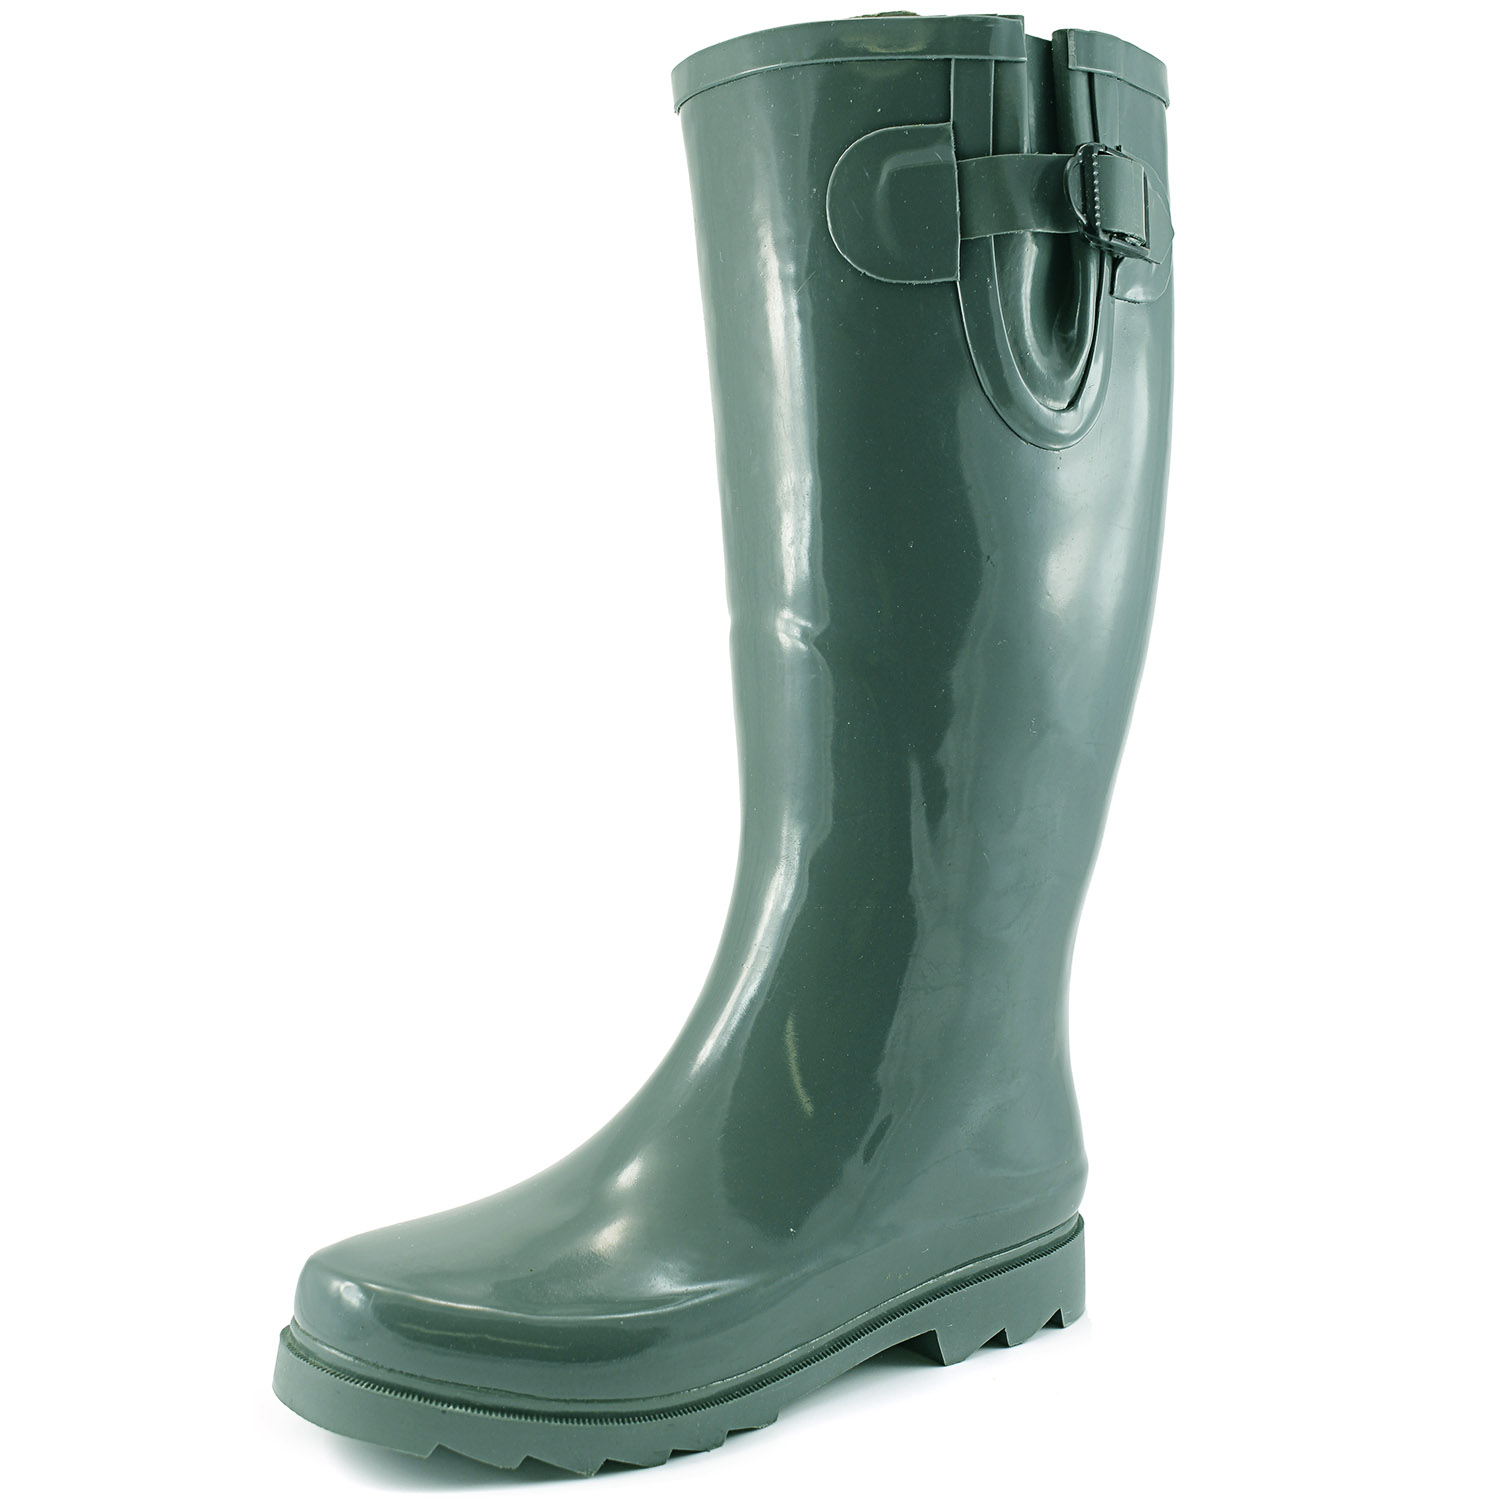 Women's Puddles Rain and Snow Boot Multi Color Mid Calf K...